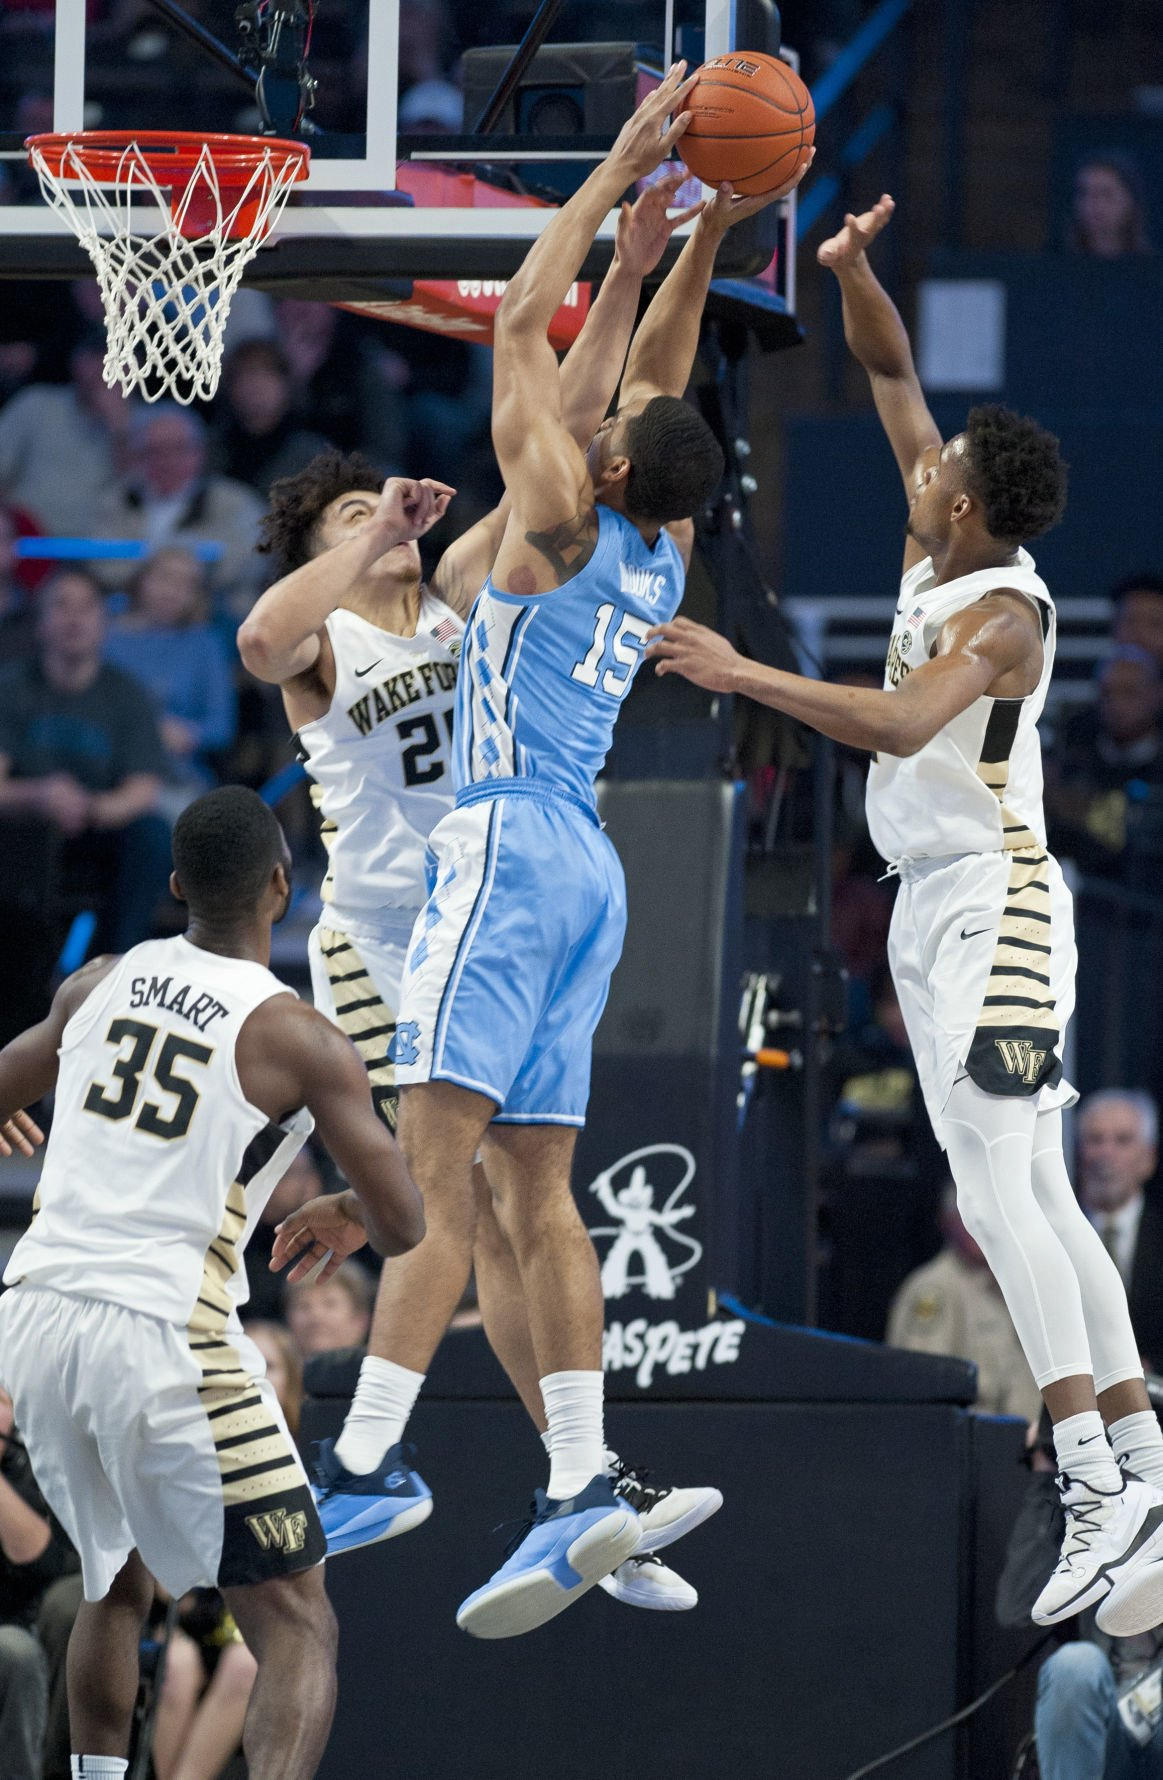 UNC Wake Forest basketball